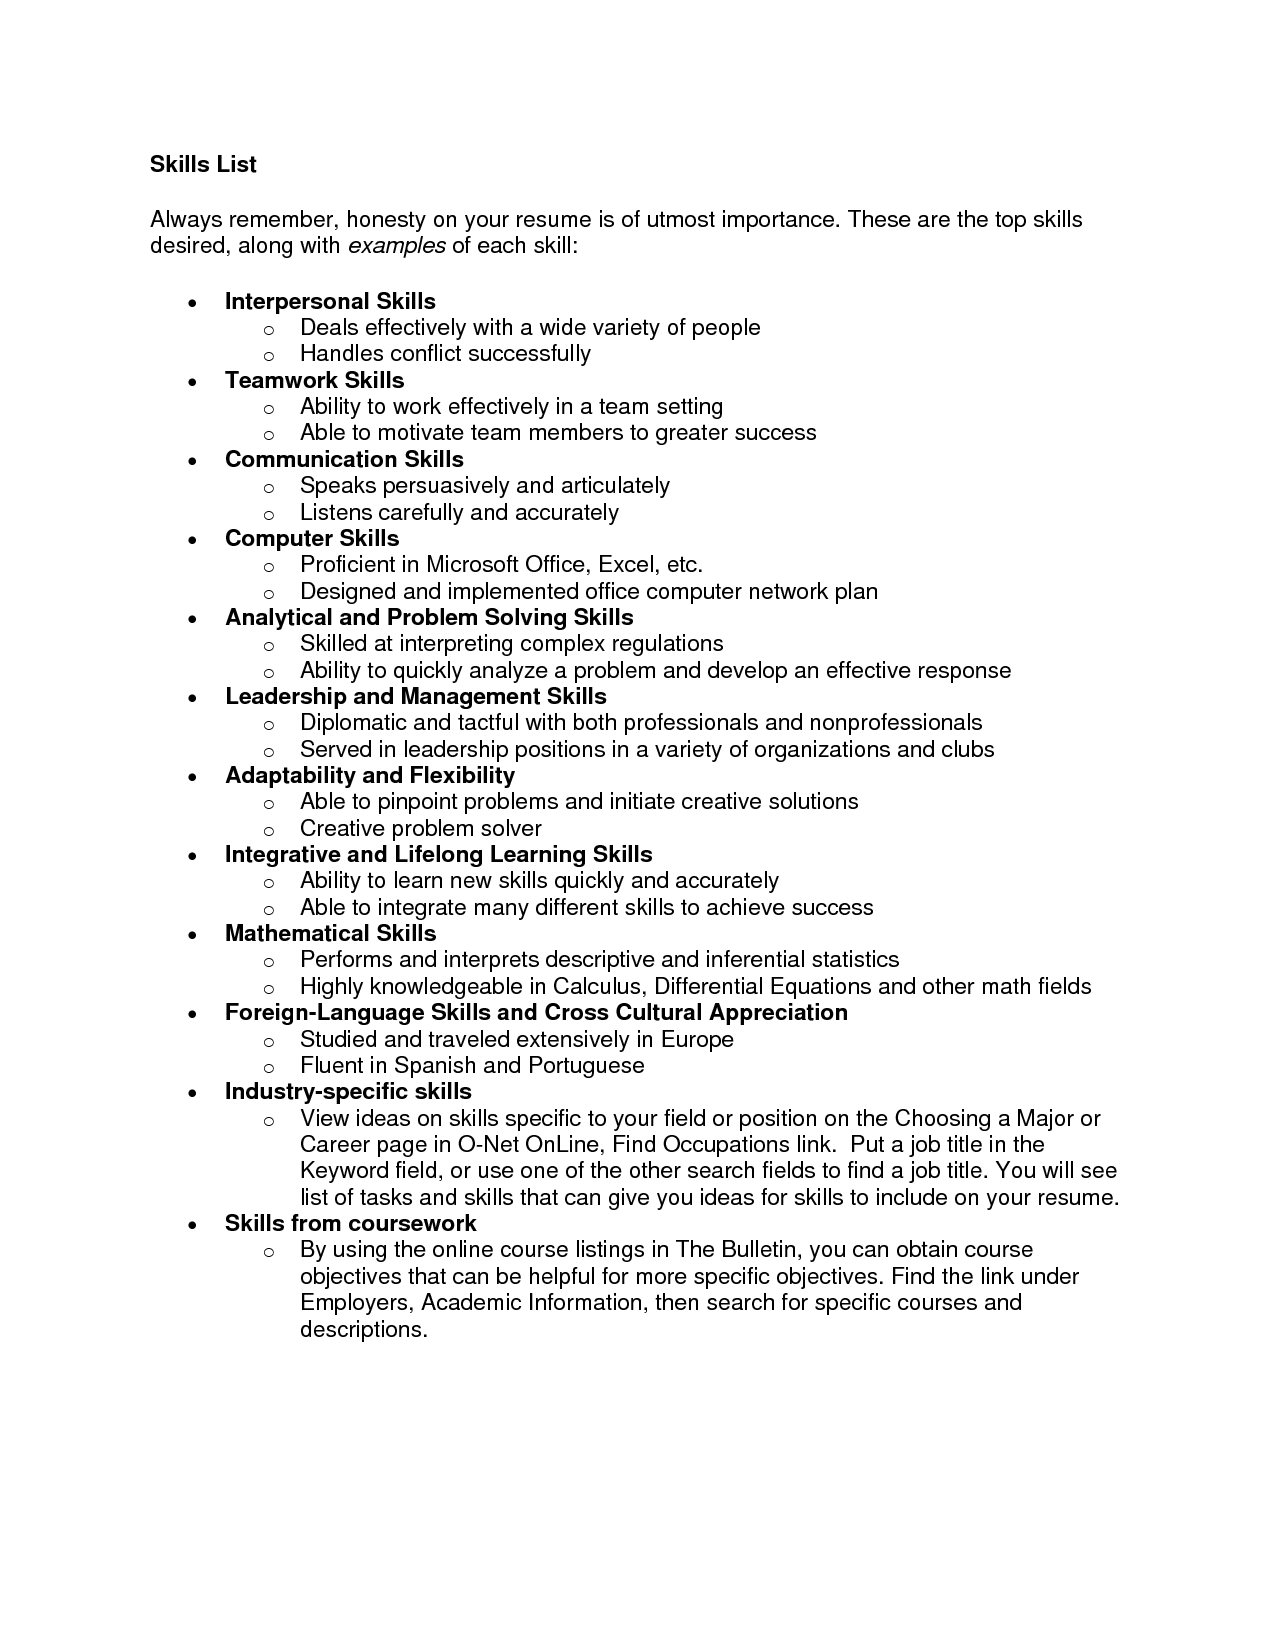 Amazing List Of Skills And Experience Examples Of Resume Skills List Resume  Resume Excel Skills